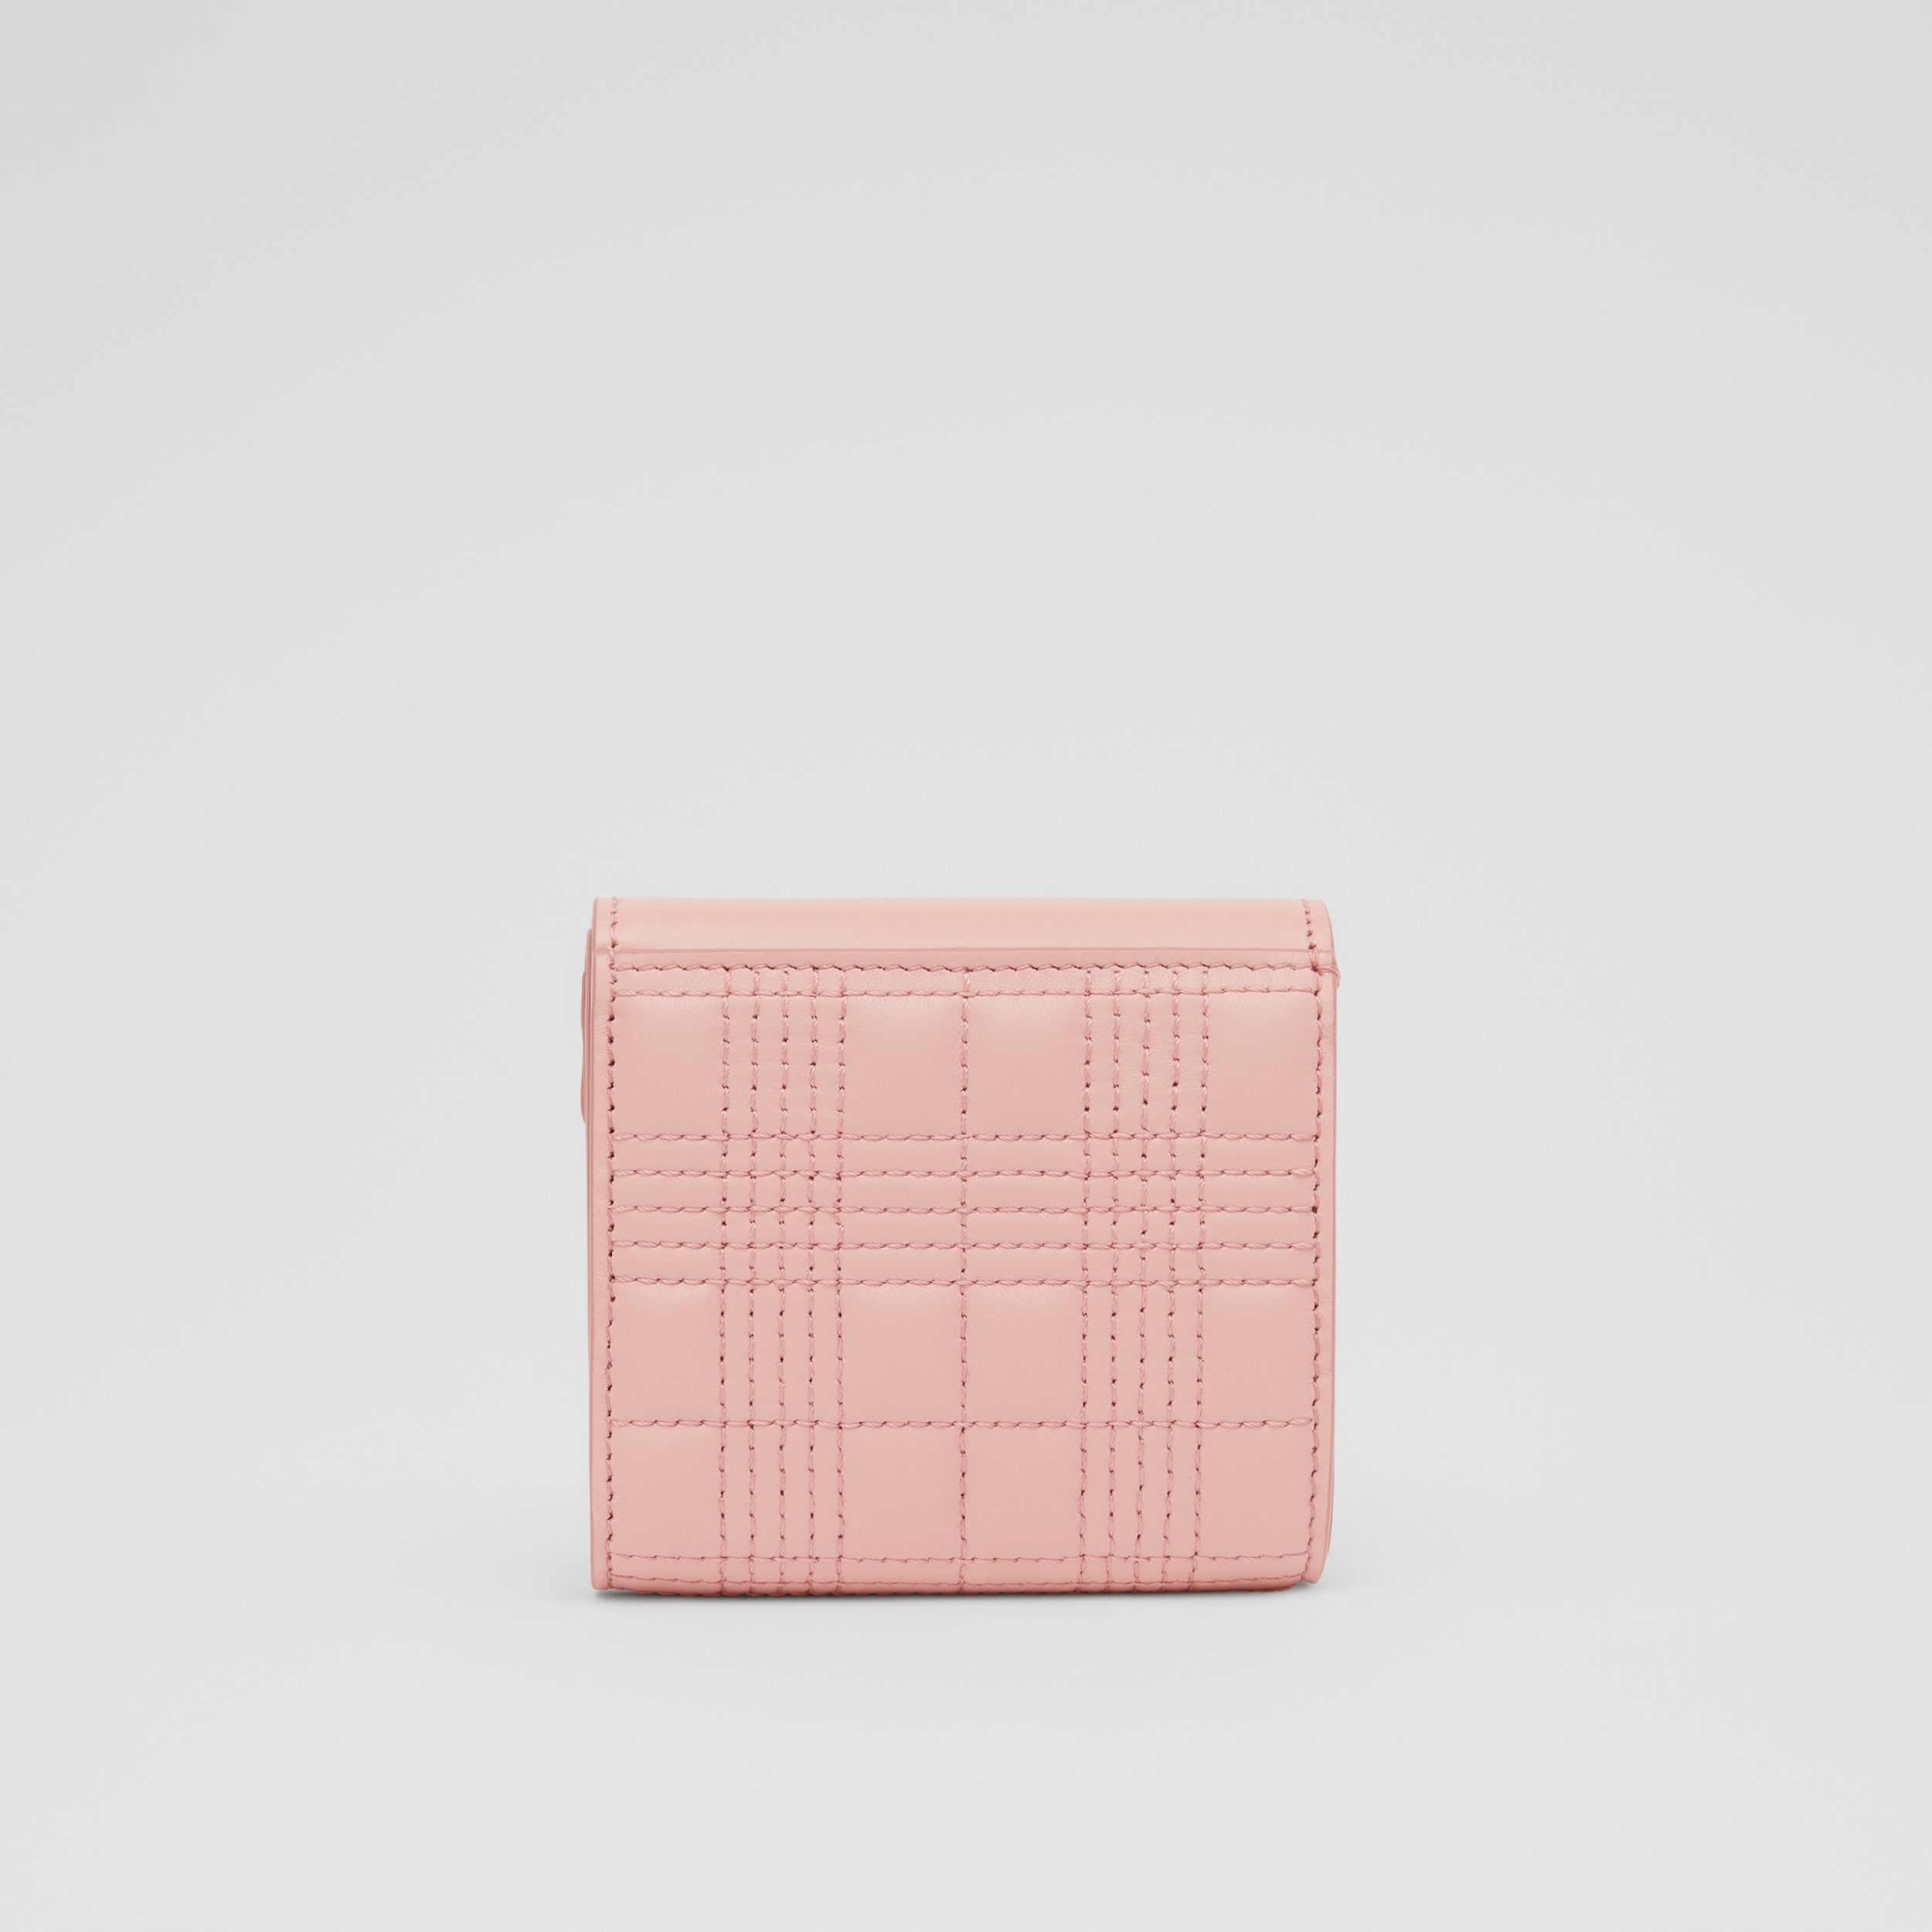 Quilted Lambskin Folding Wallet in Blush Pink - Women | Burberry Canada - 4